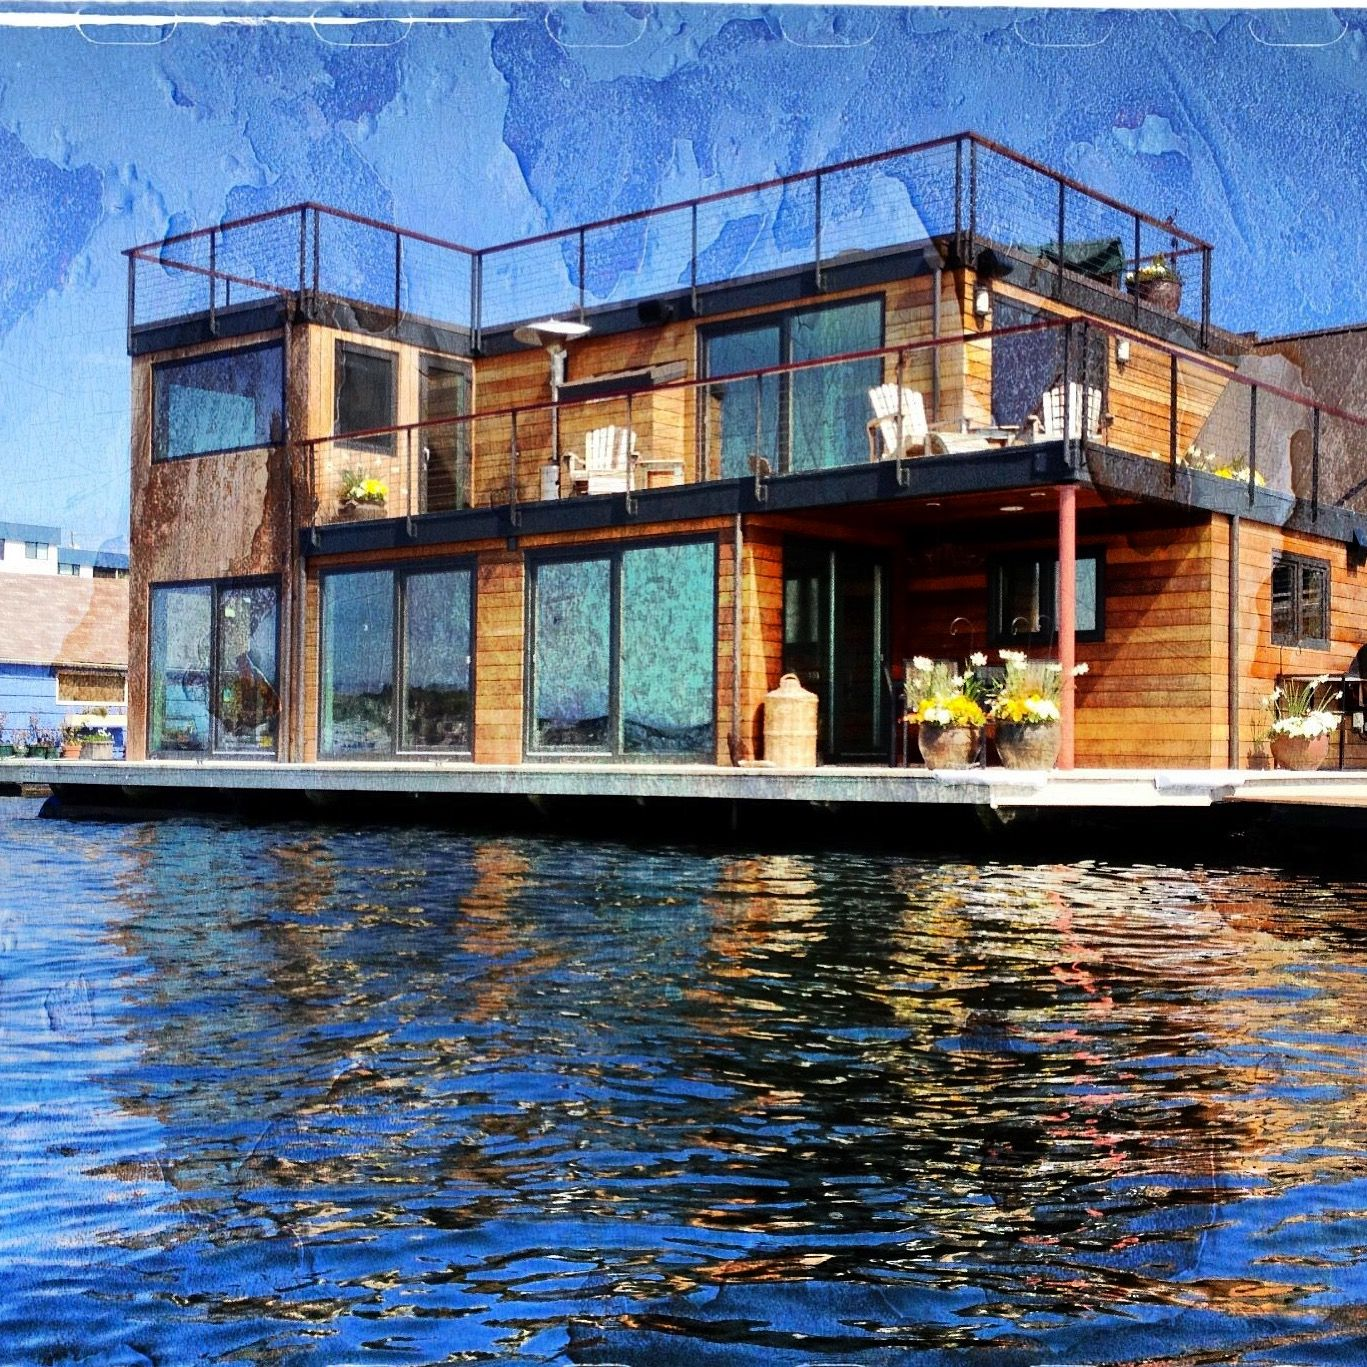 Luxury Waterfront Homes: Seattle Floating Homes